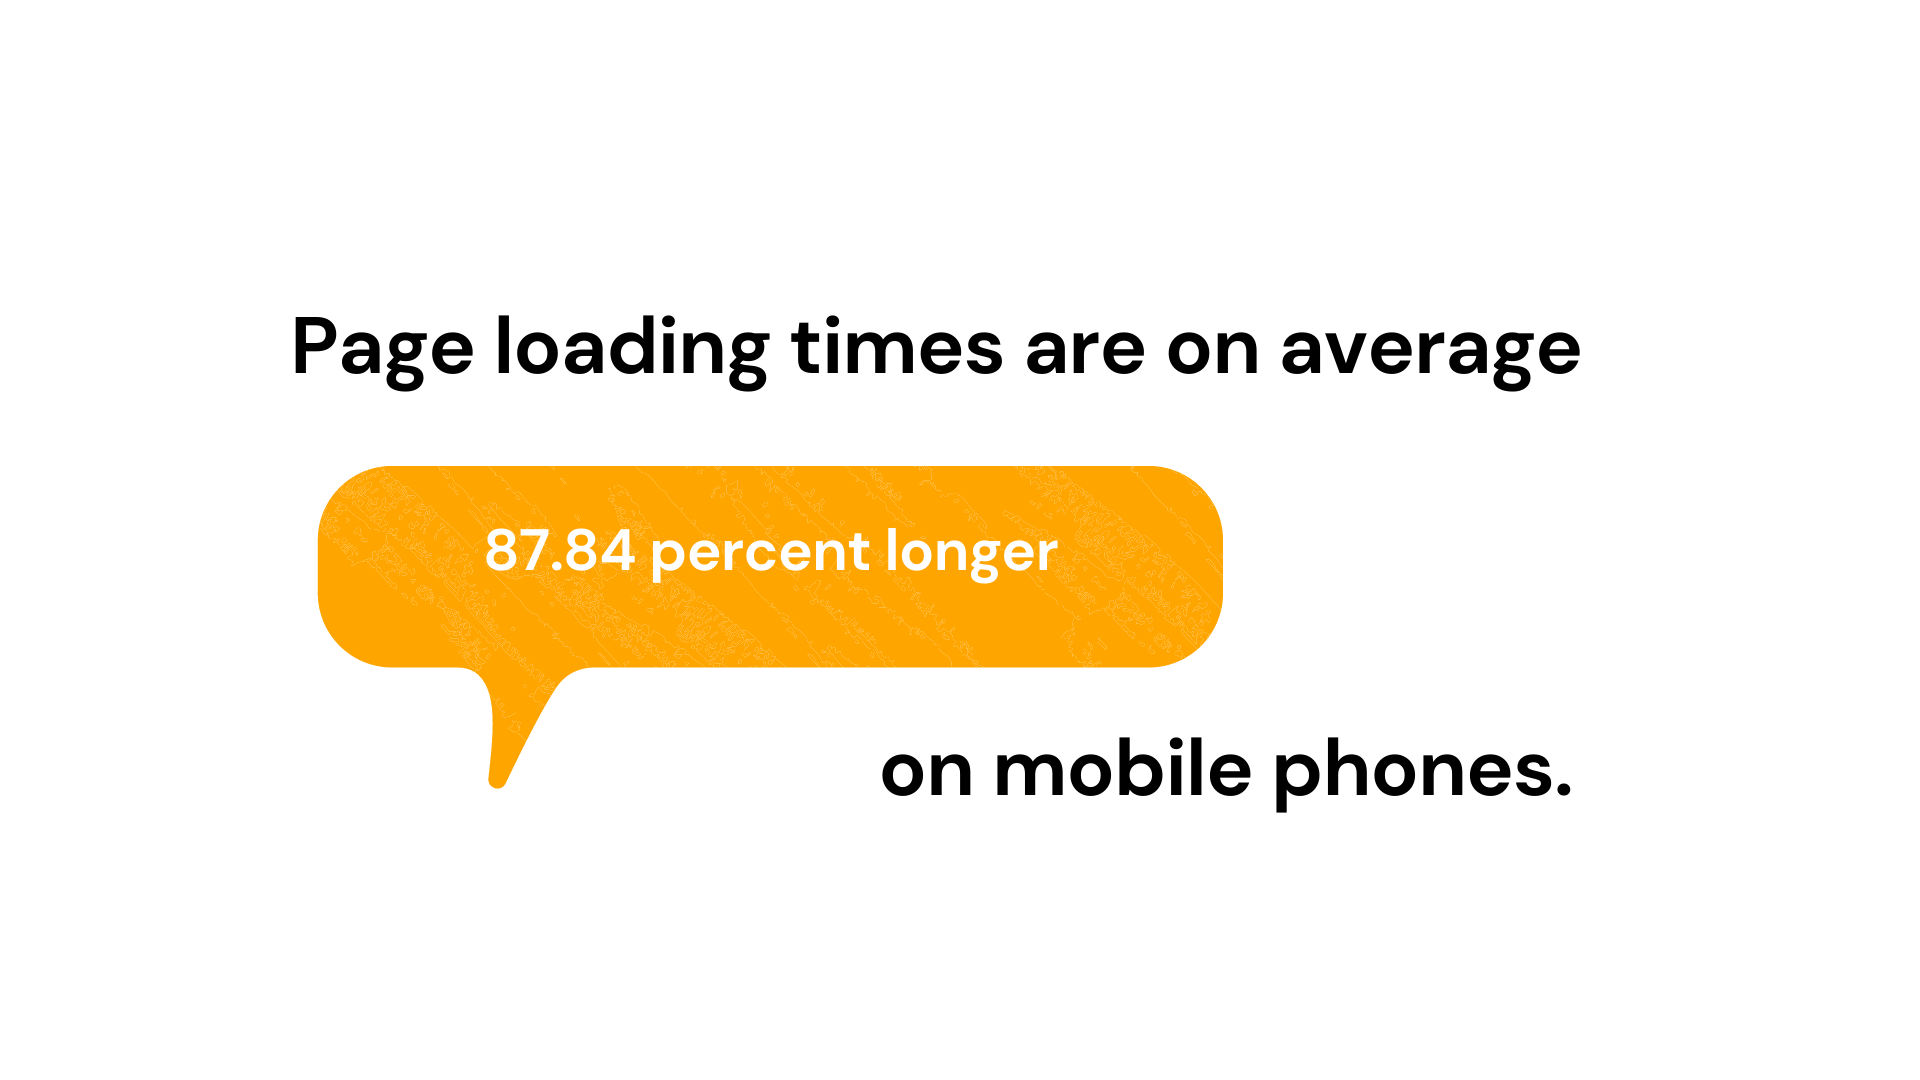 page loading times on mobile phones